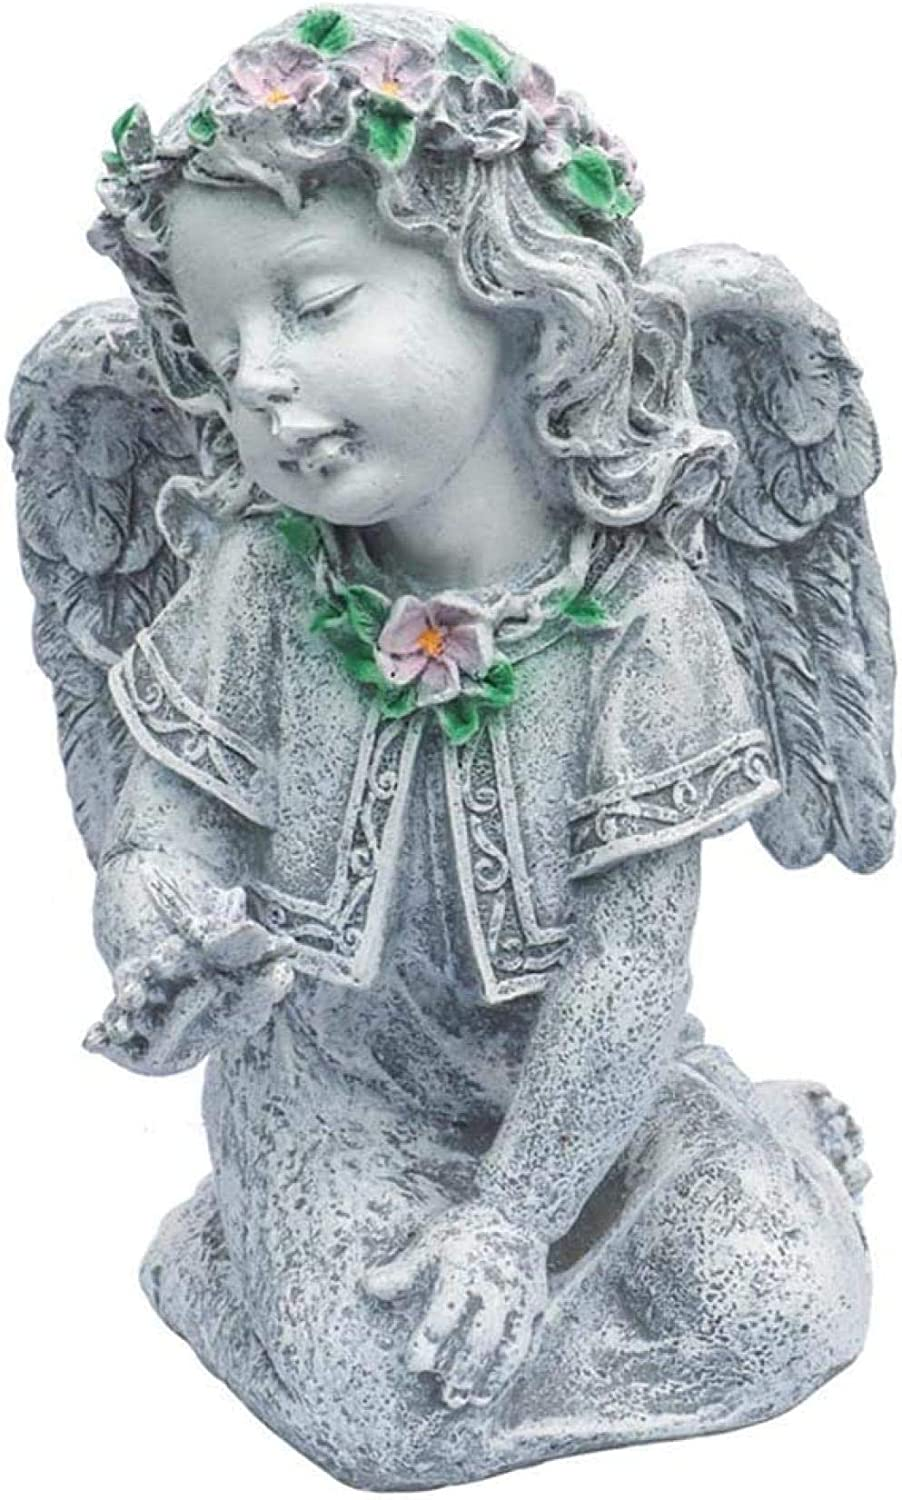 Statues Garden Angel Sculpture Wings Courtyard Statue Max Financial sales sale 73% OFF with